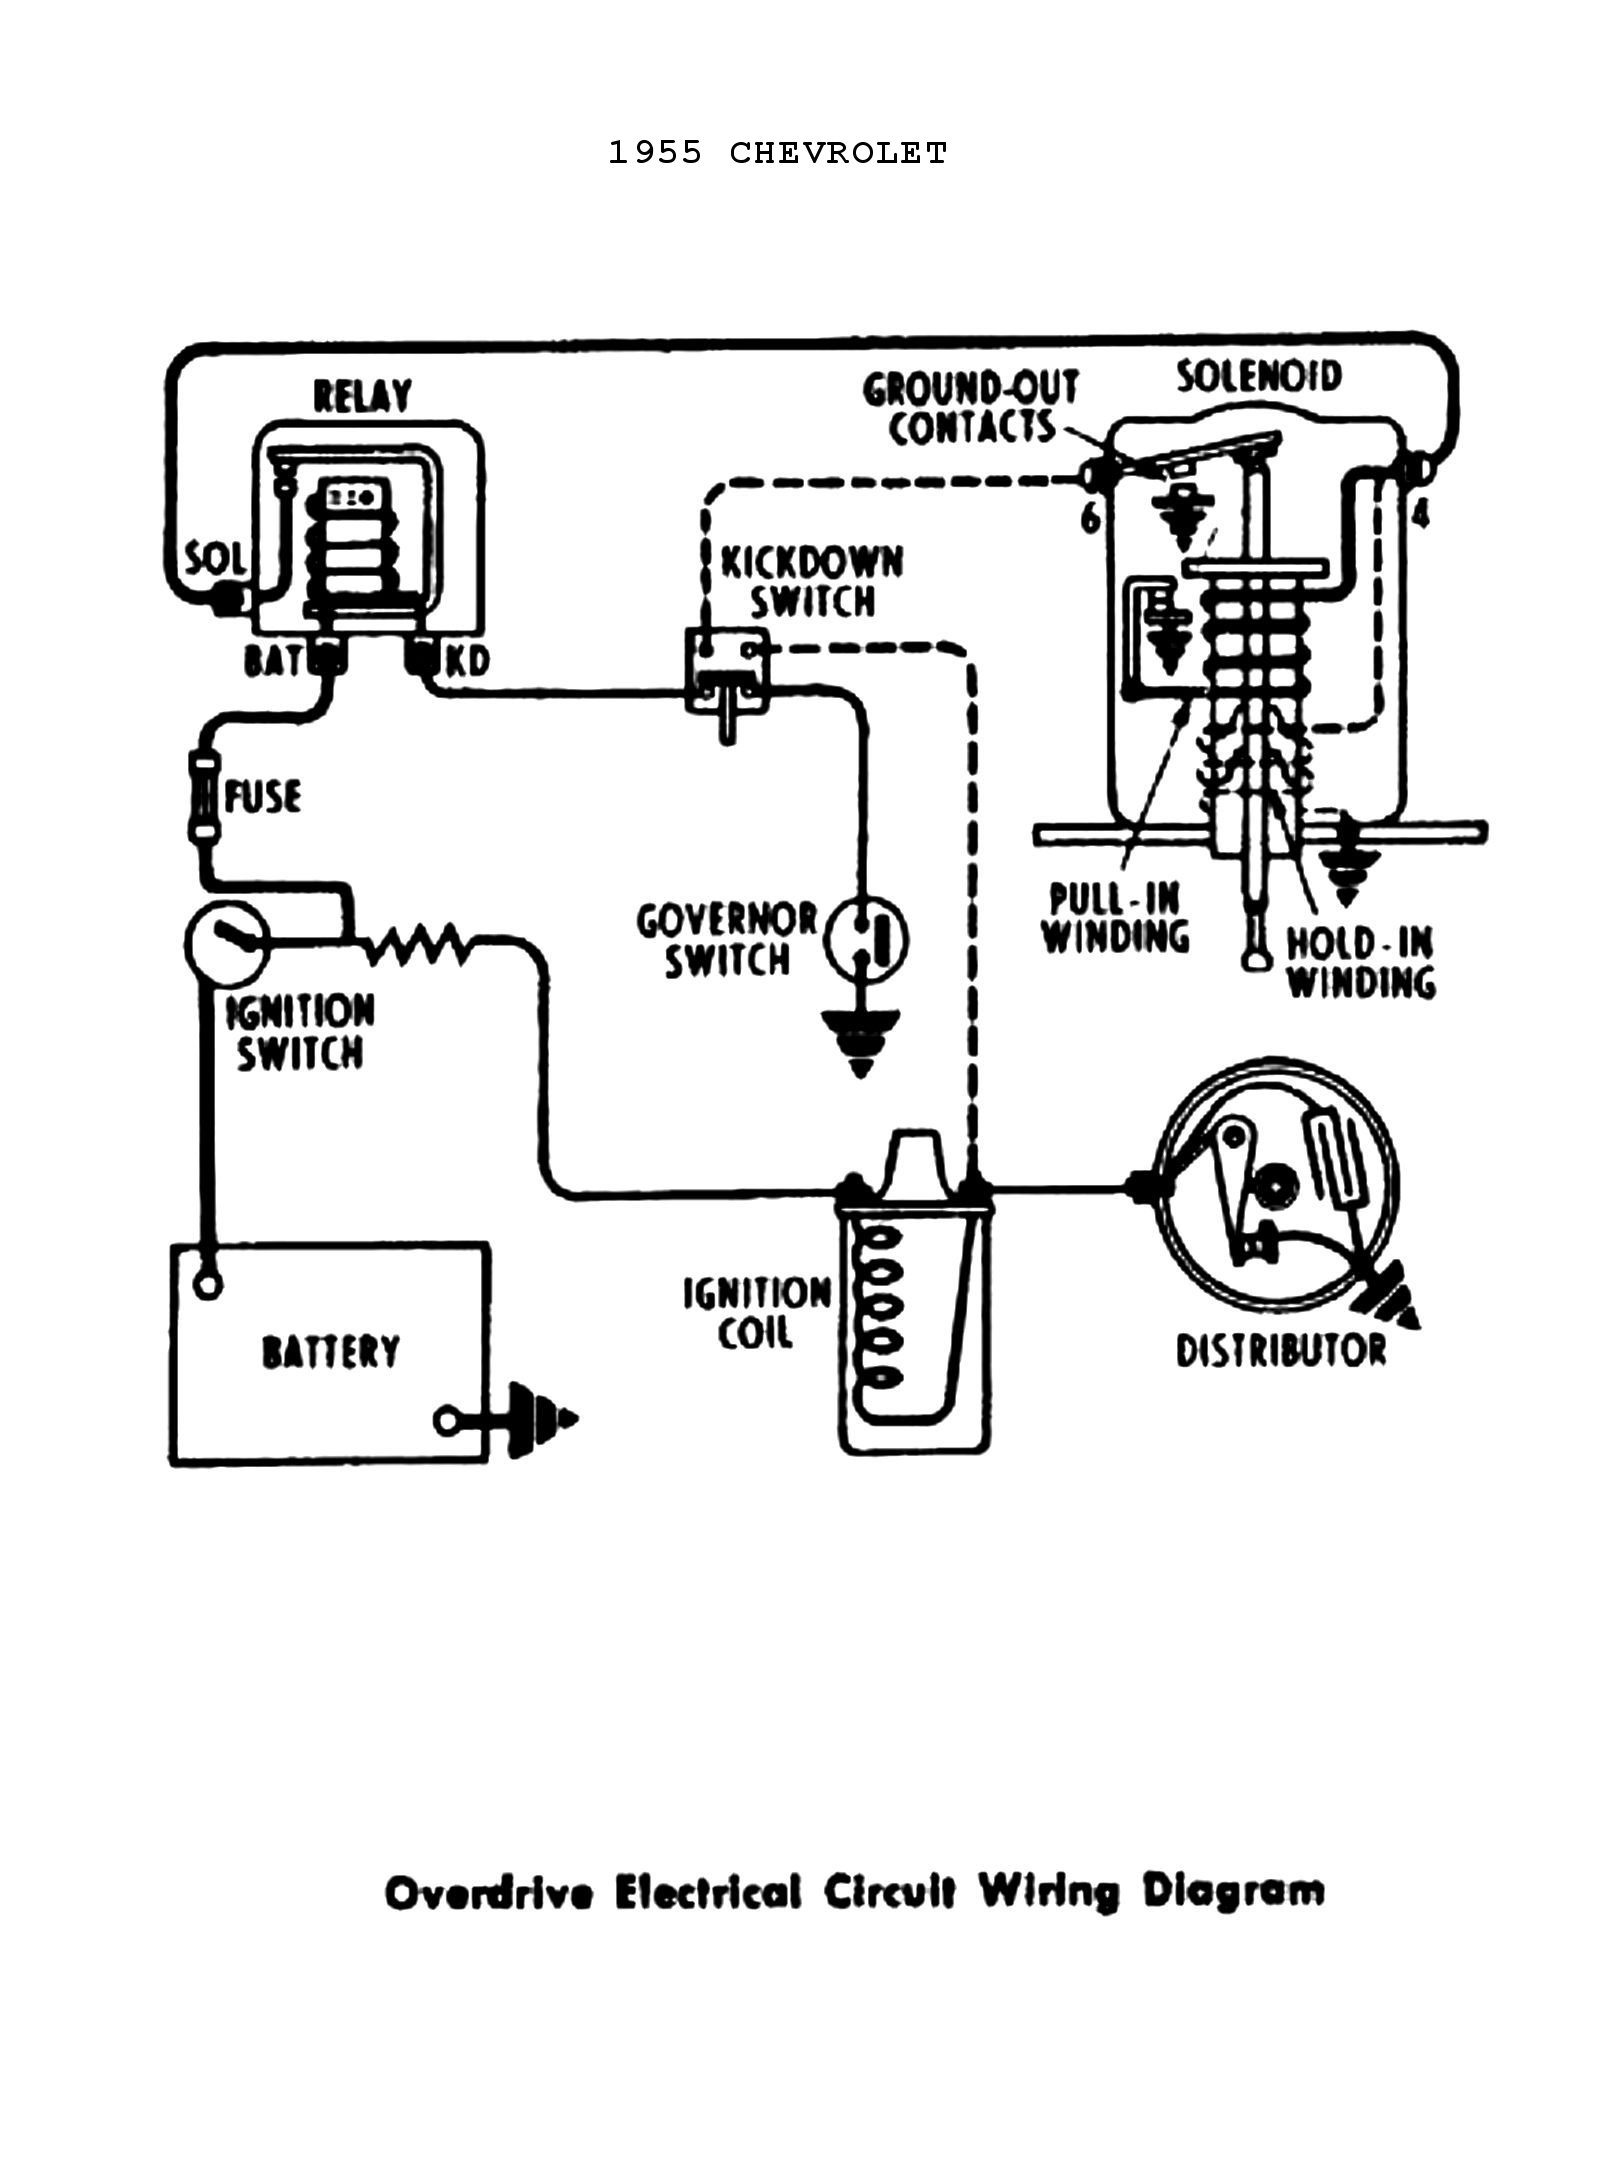 chevy wiring diagrams home heater wiring diagram 1955 power windows & seats  · 1955 overdrive circuit